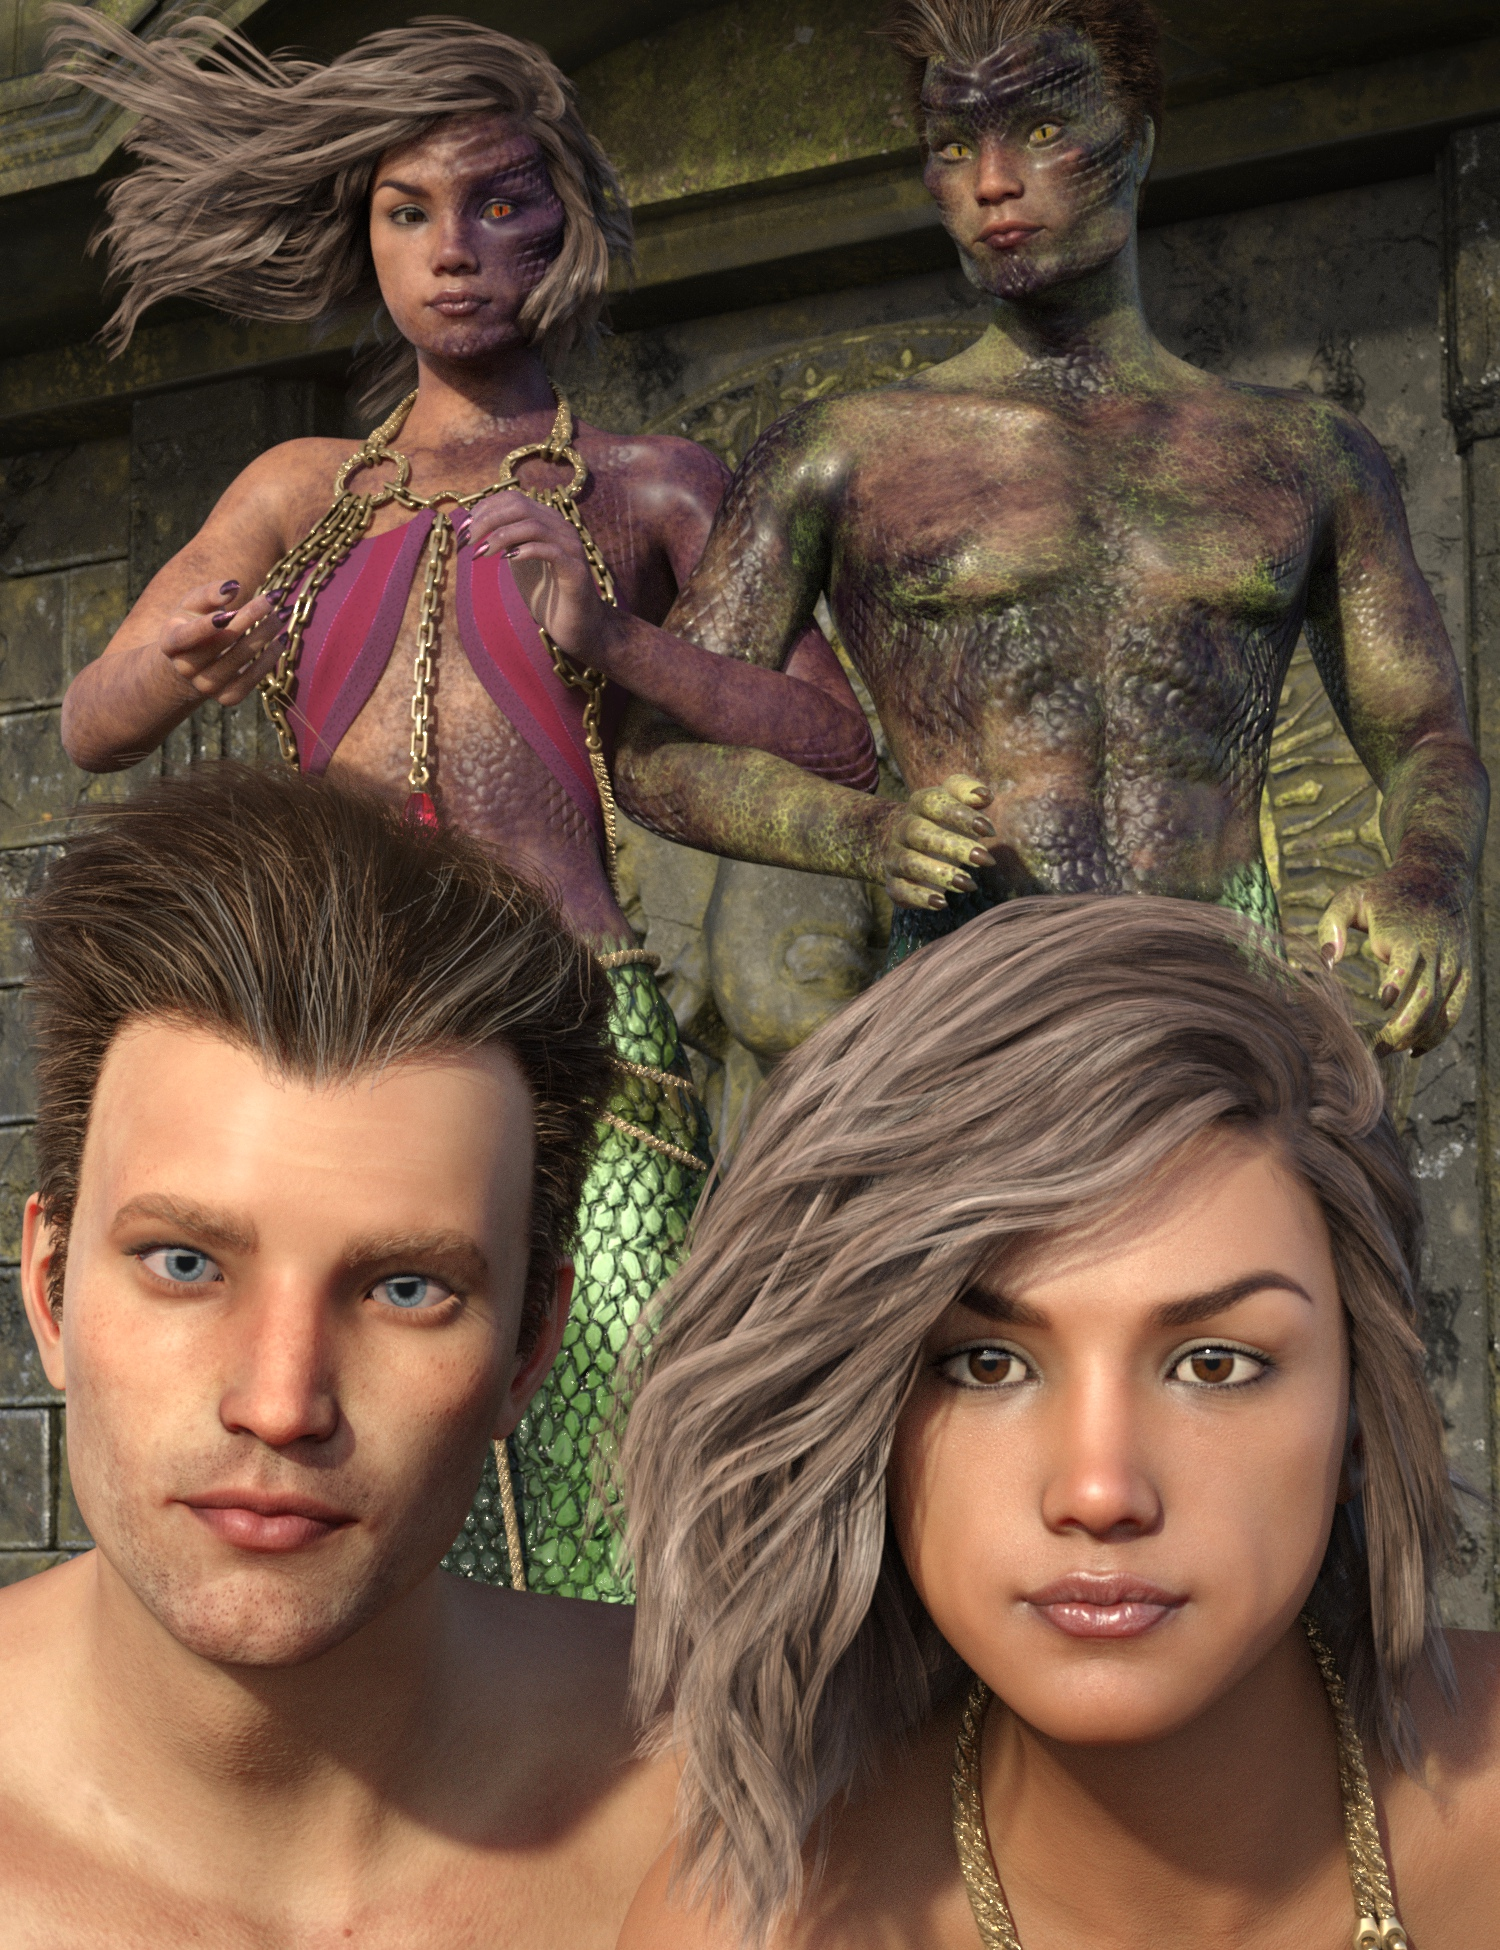 Lamia Mania - Genesis 8 Faces and Lamia Top Skin by: 3D-GHDesign, 3D Models by Daz 3D